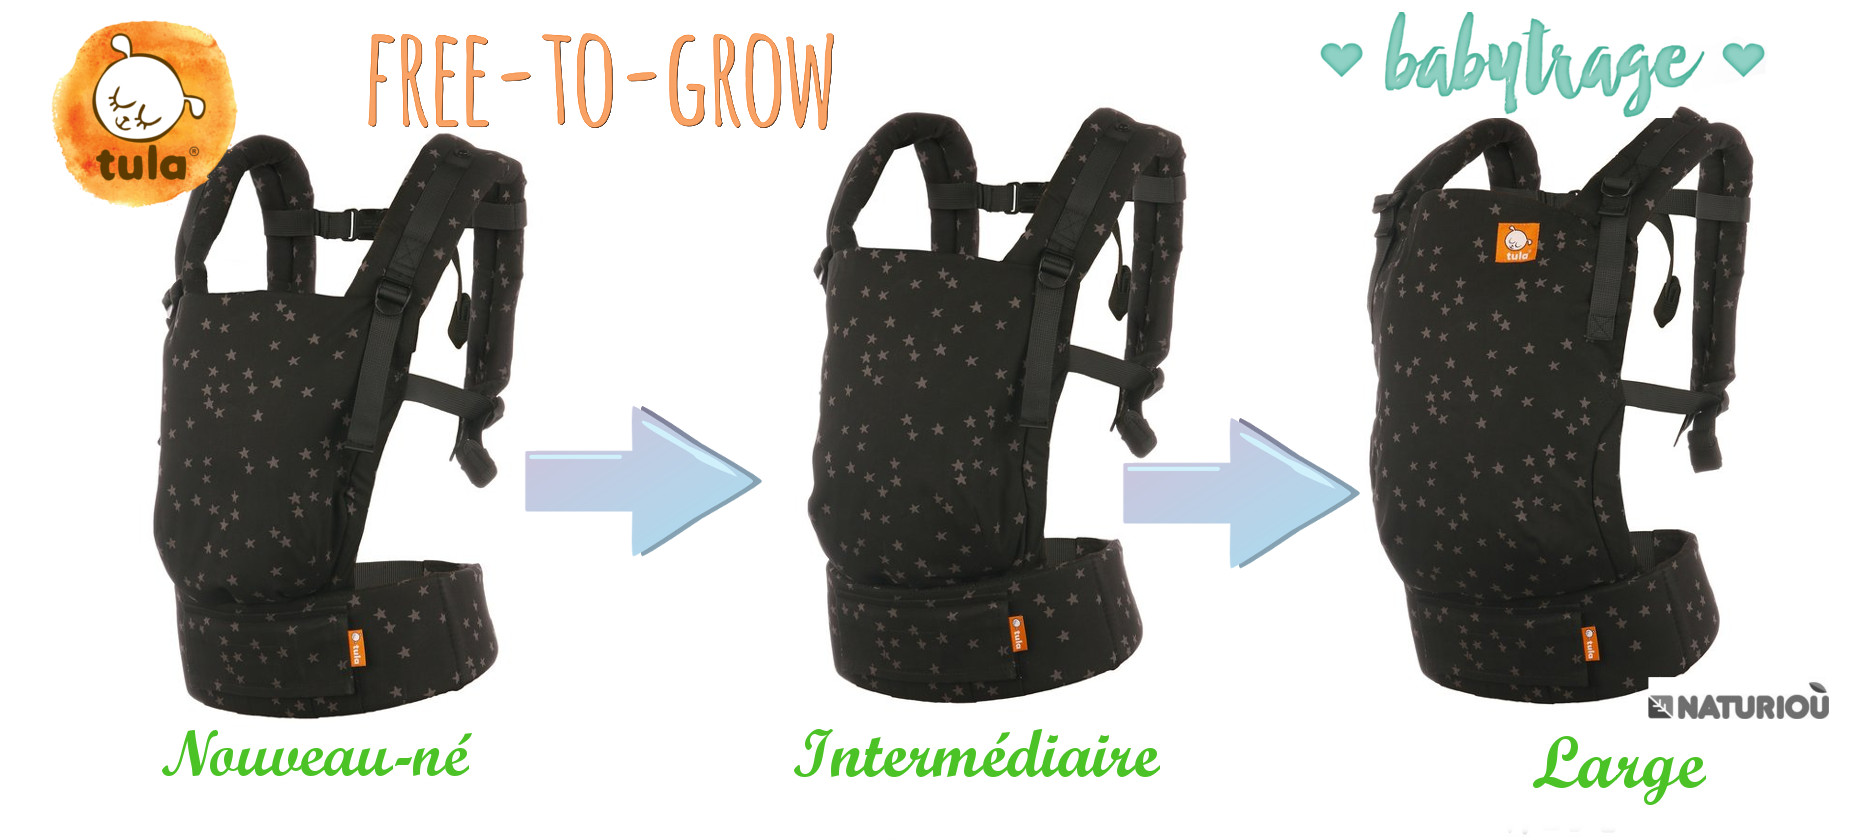 Porte-bébé Tula Free-to-grow Inquire